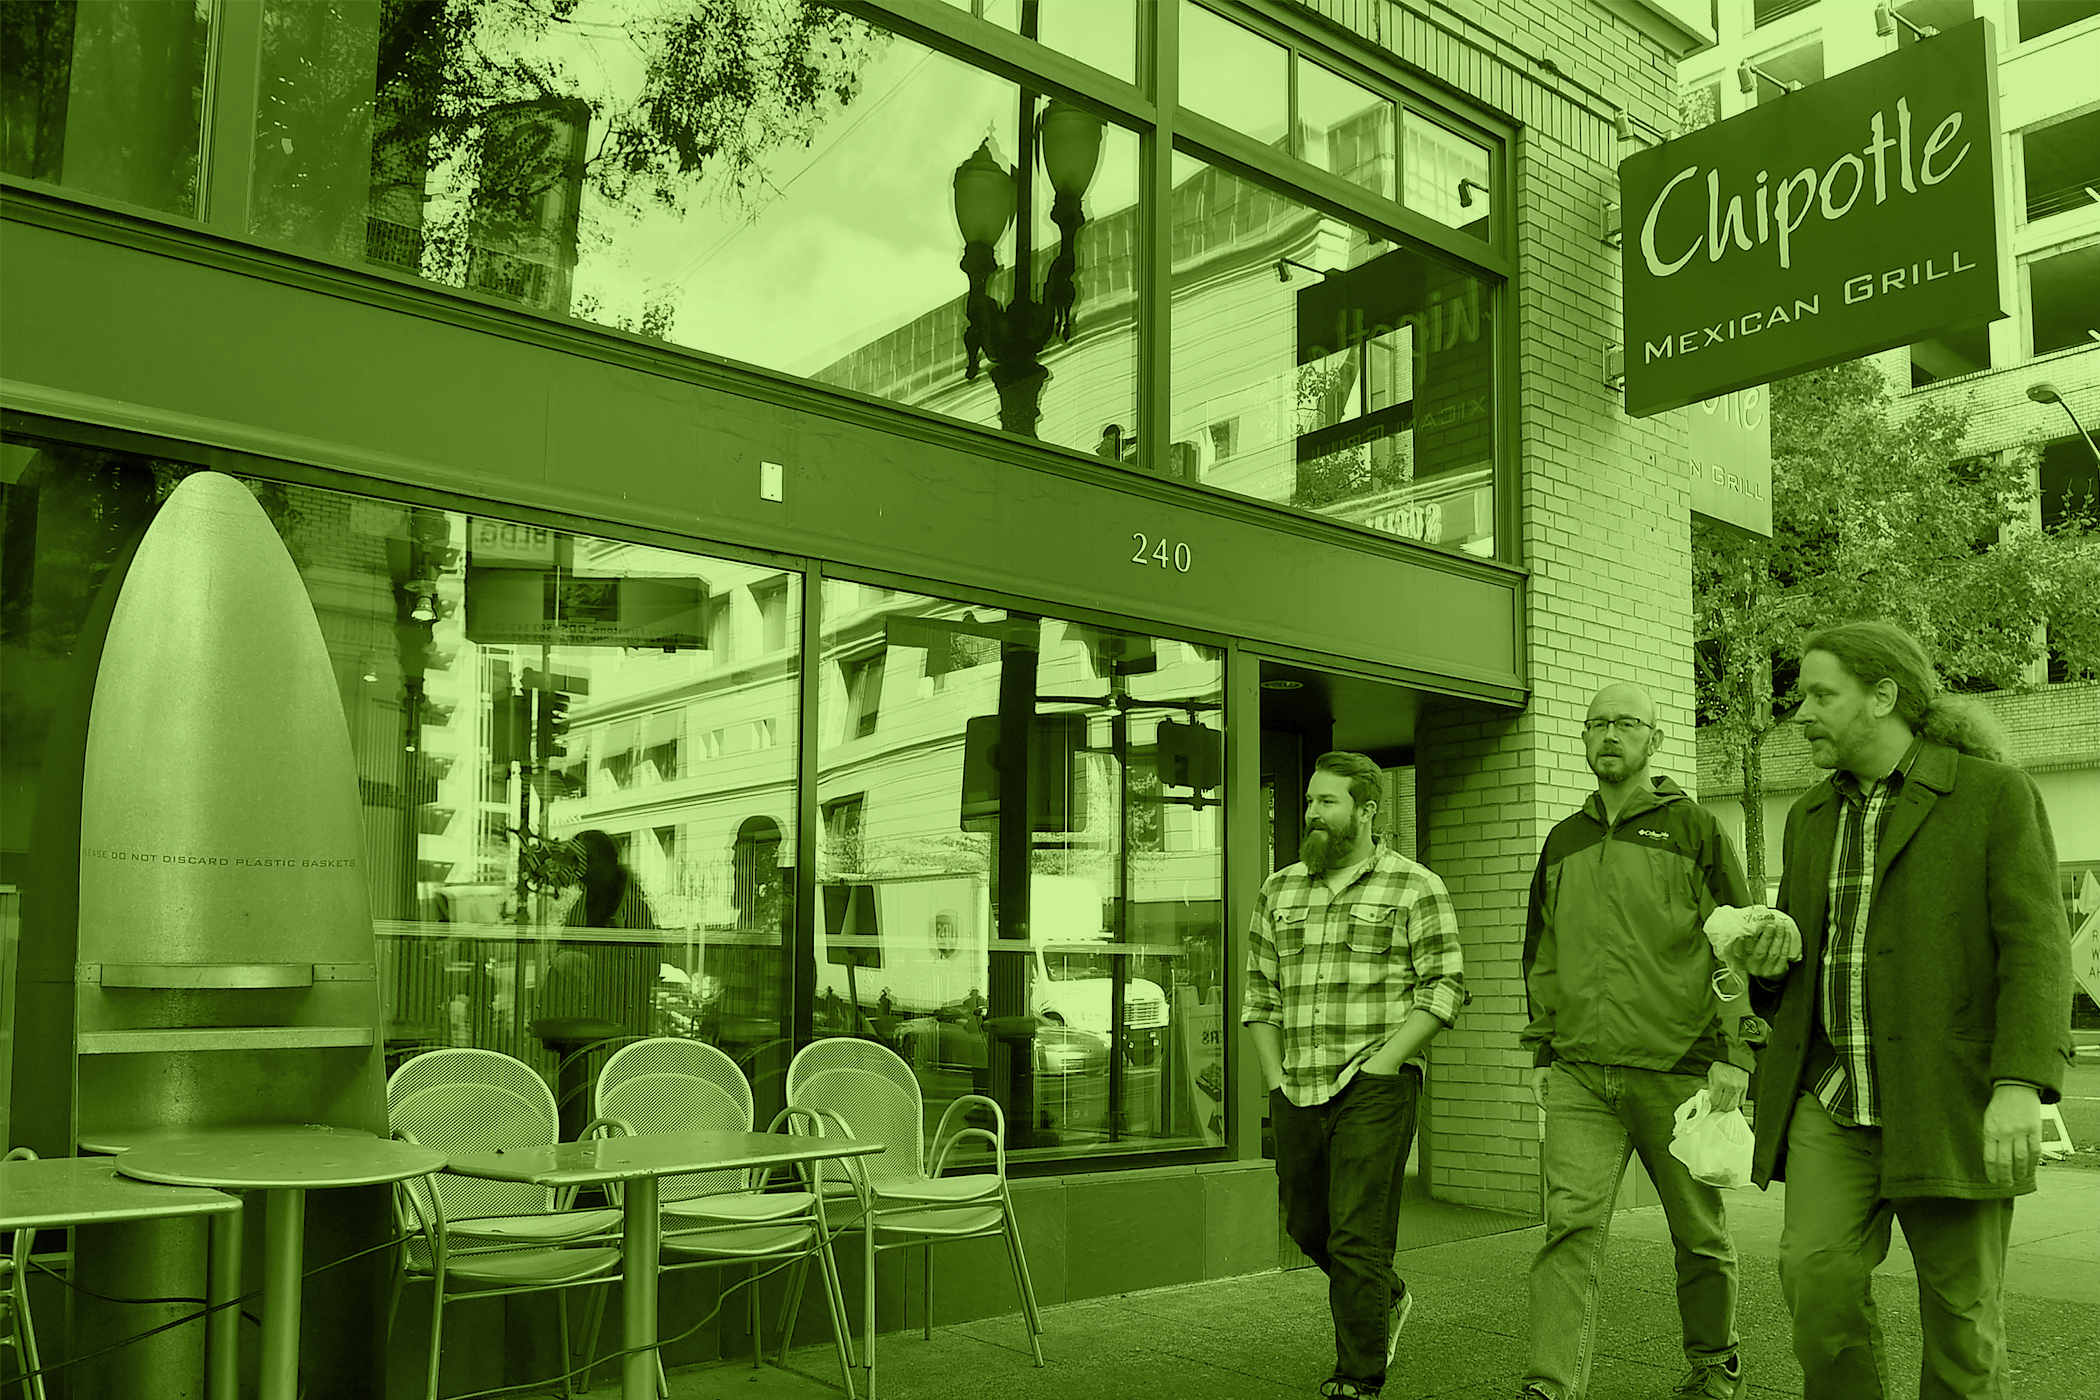 People walk past a Chipotle Mexican Grill store location in downtown Portland on November 3, 2015 in Portland, Oregon.